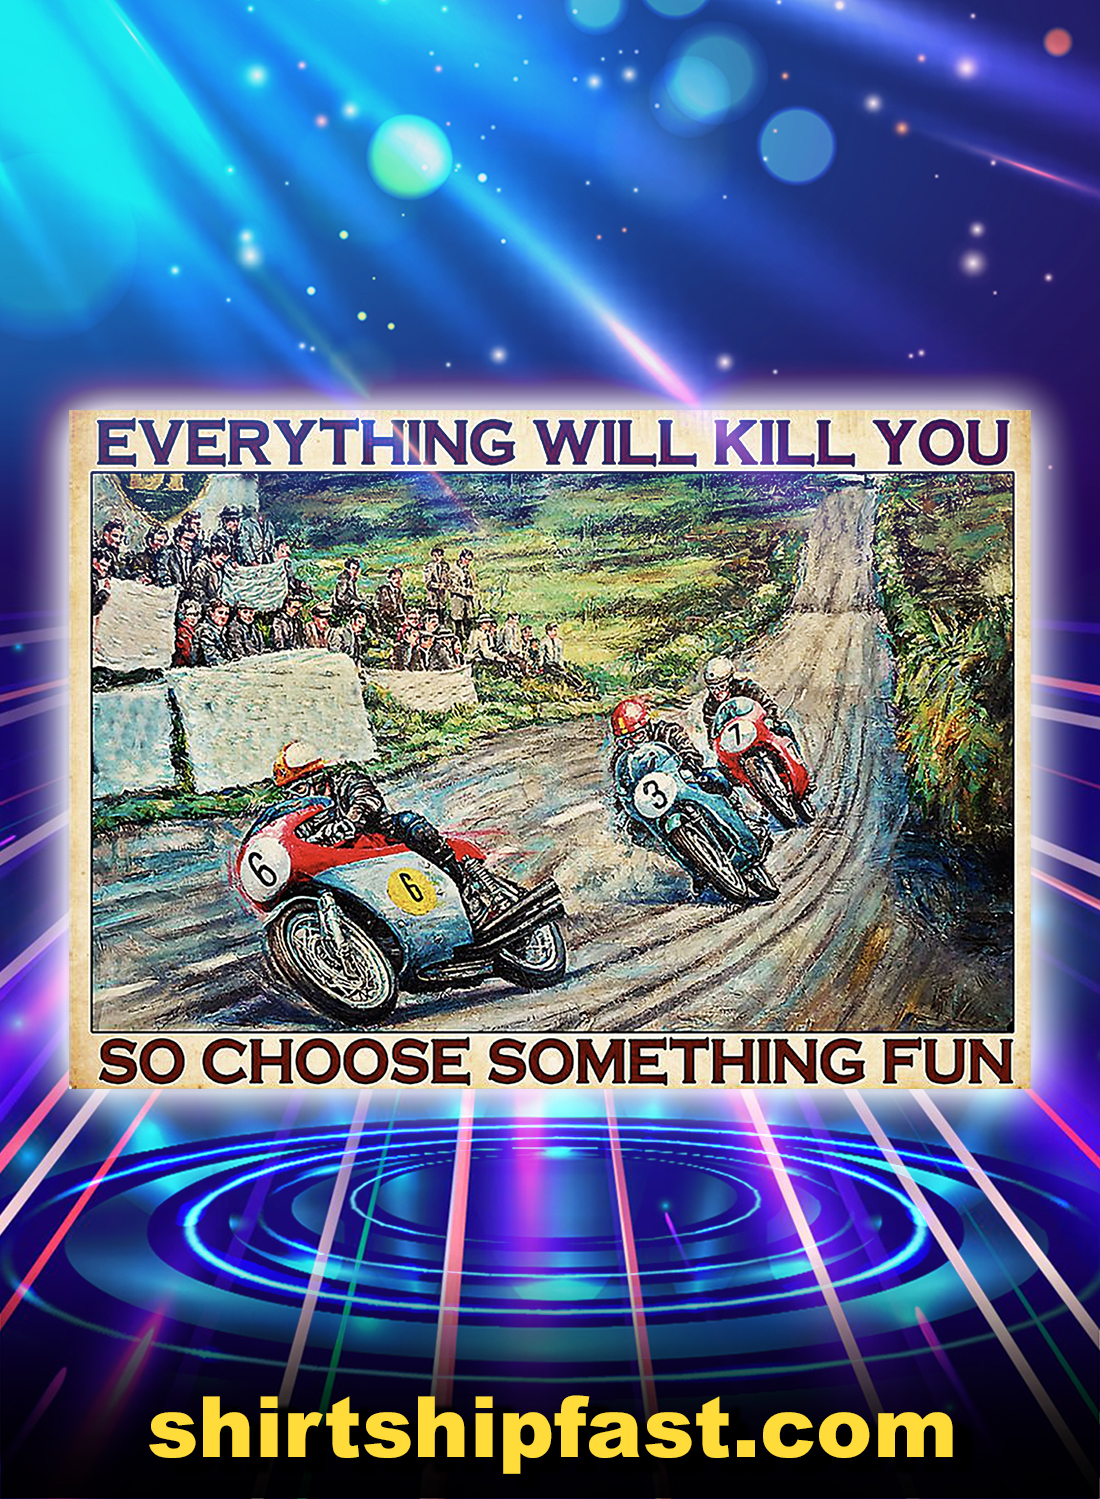 Isle of man everything will kill you so choose something fun poster - A4